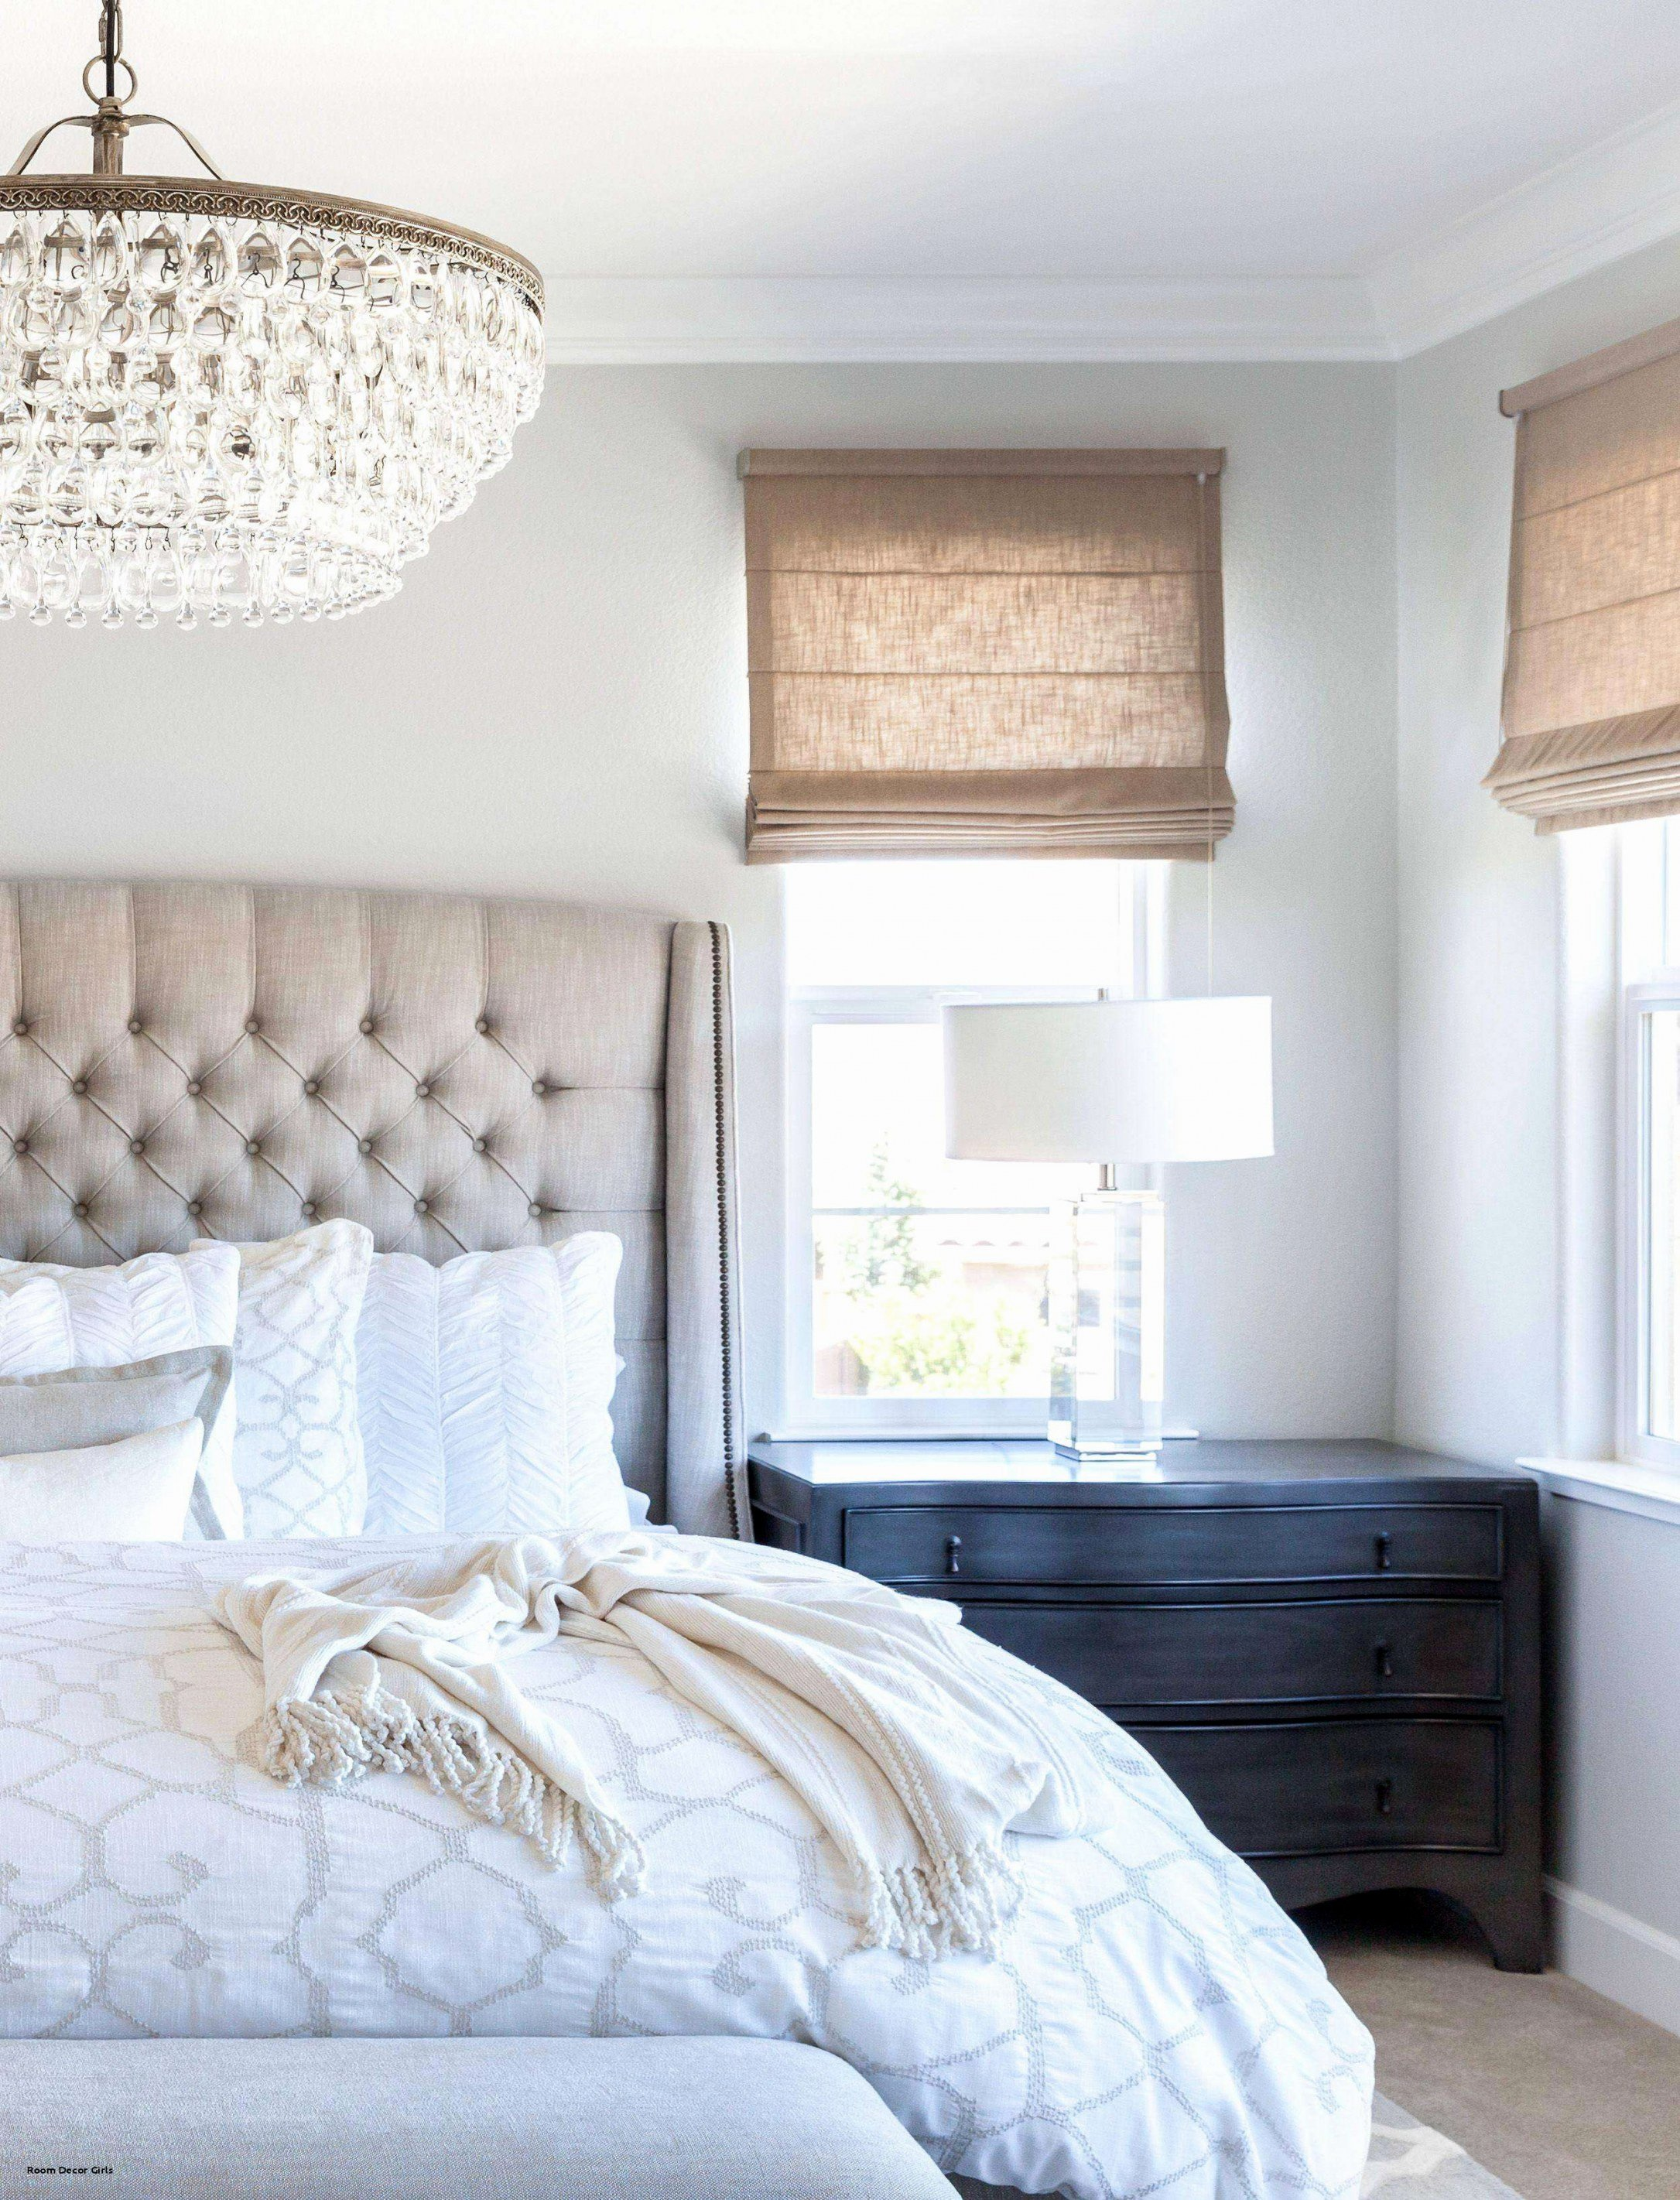 10 Year Old Boy Bedroom Ideas Awesome Bedrooms for Girls 48 Awesome Bedroom Ideas for La S Home